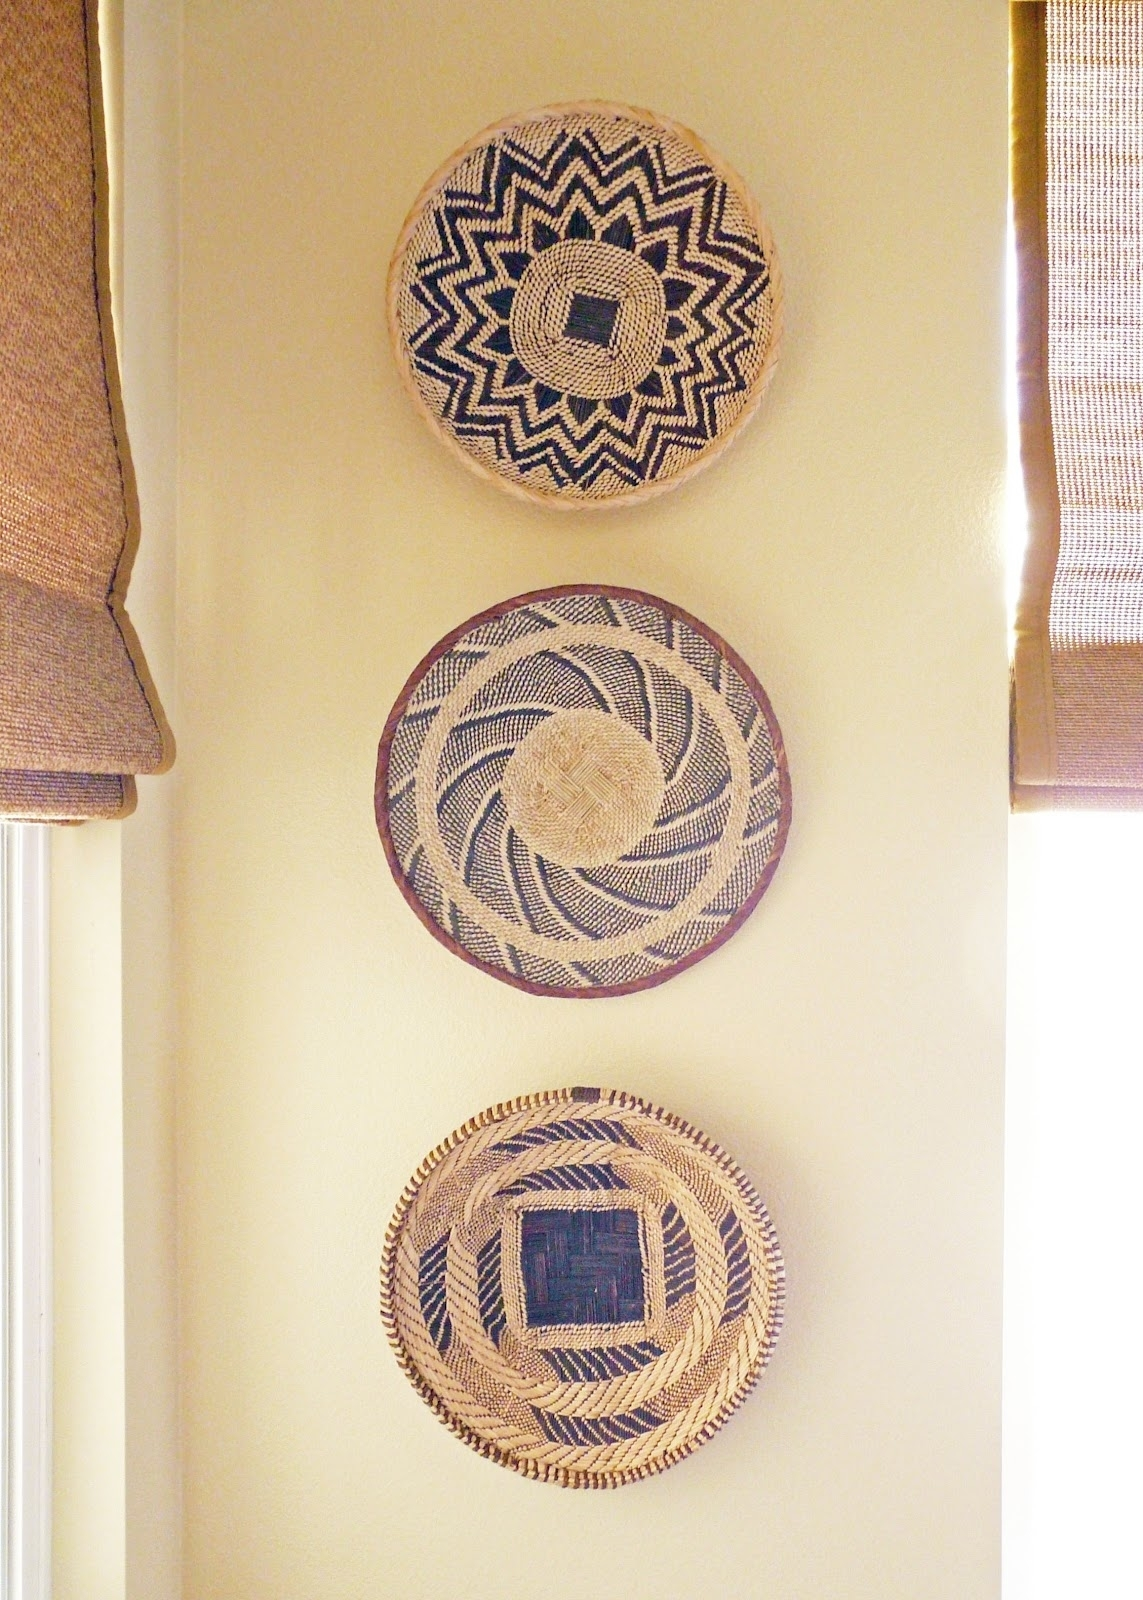 Wall Decor: Good Look Baskets As Wall Decor Woven Wall Baskets With Regard To 2018 African Wall Accents (View 14 of 15)